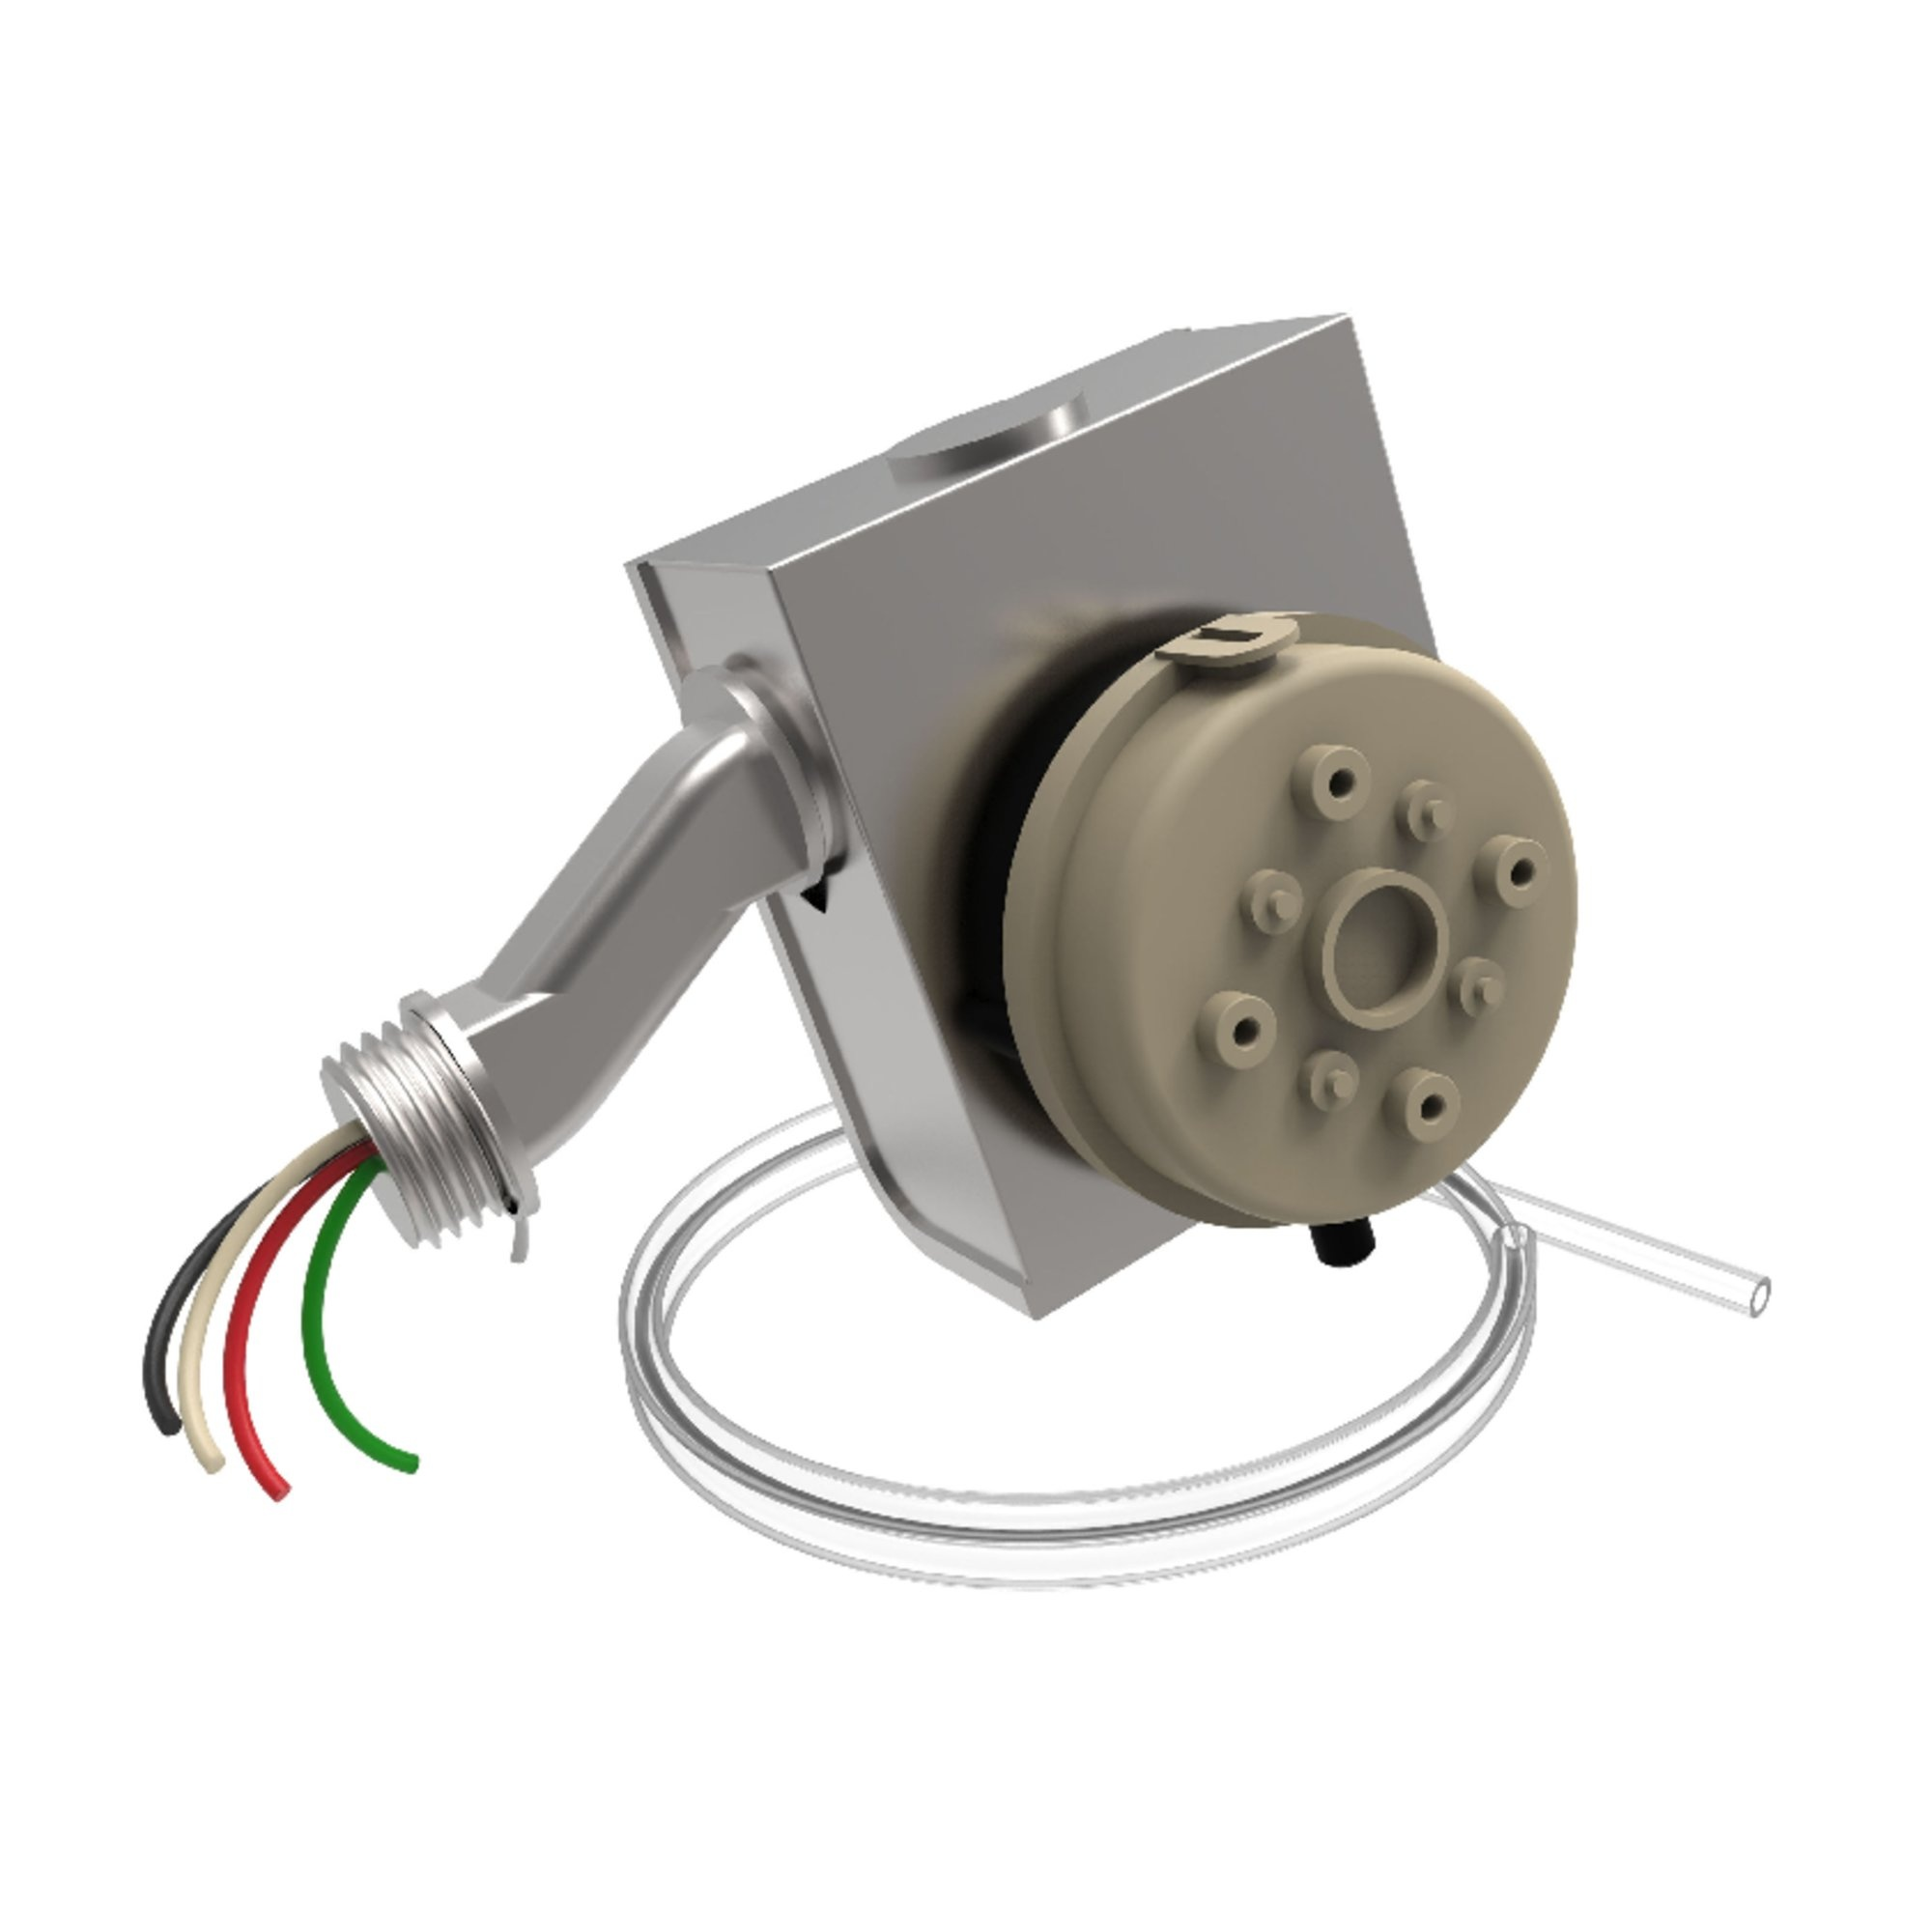 DB10 Pressure Switch Kit